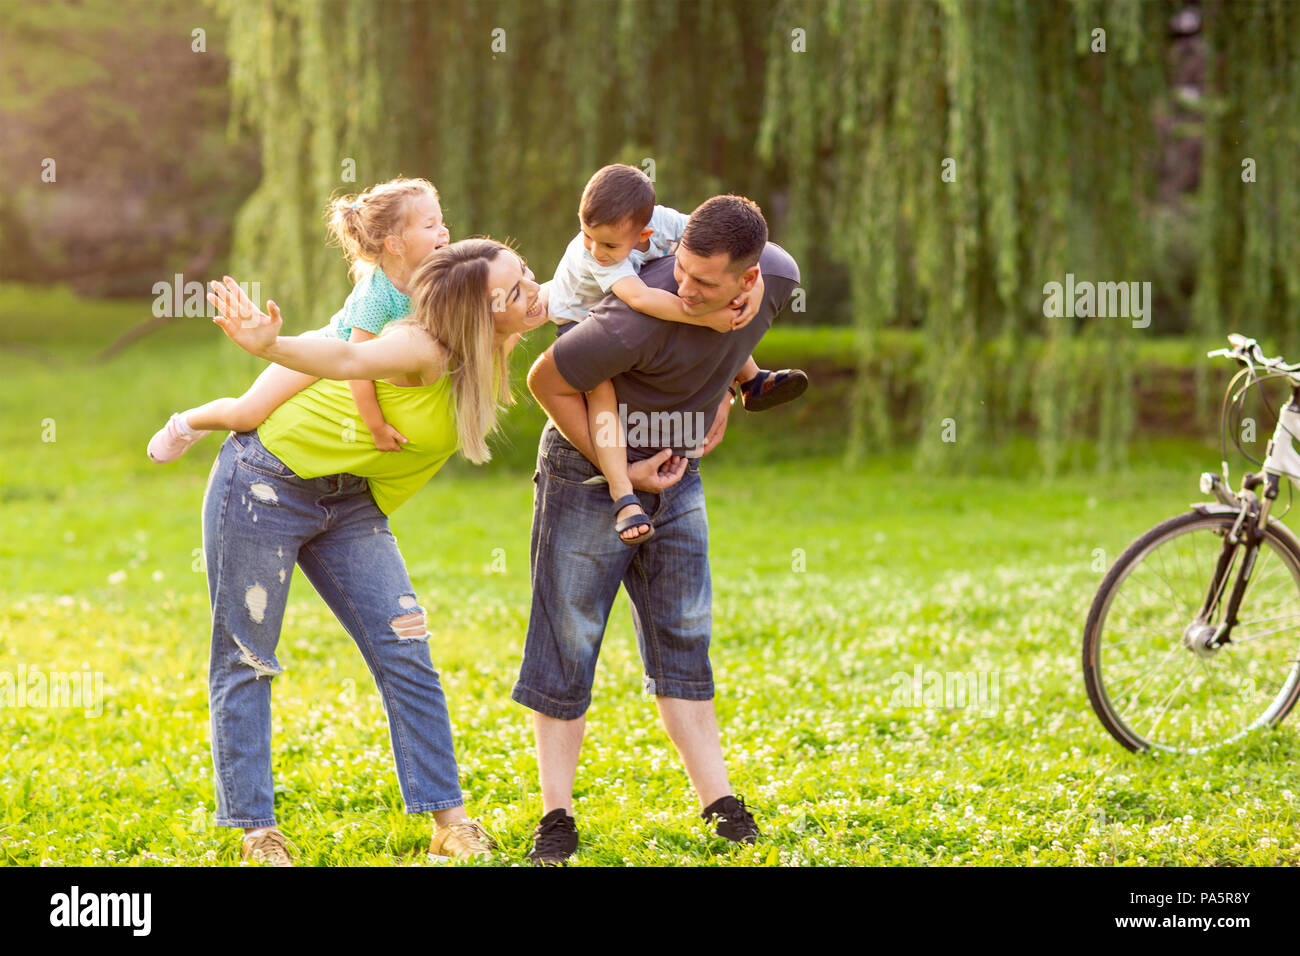 Family piggyback - Smiling young parents playing with their children in the park - Stock Image